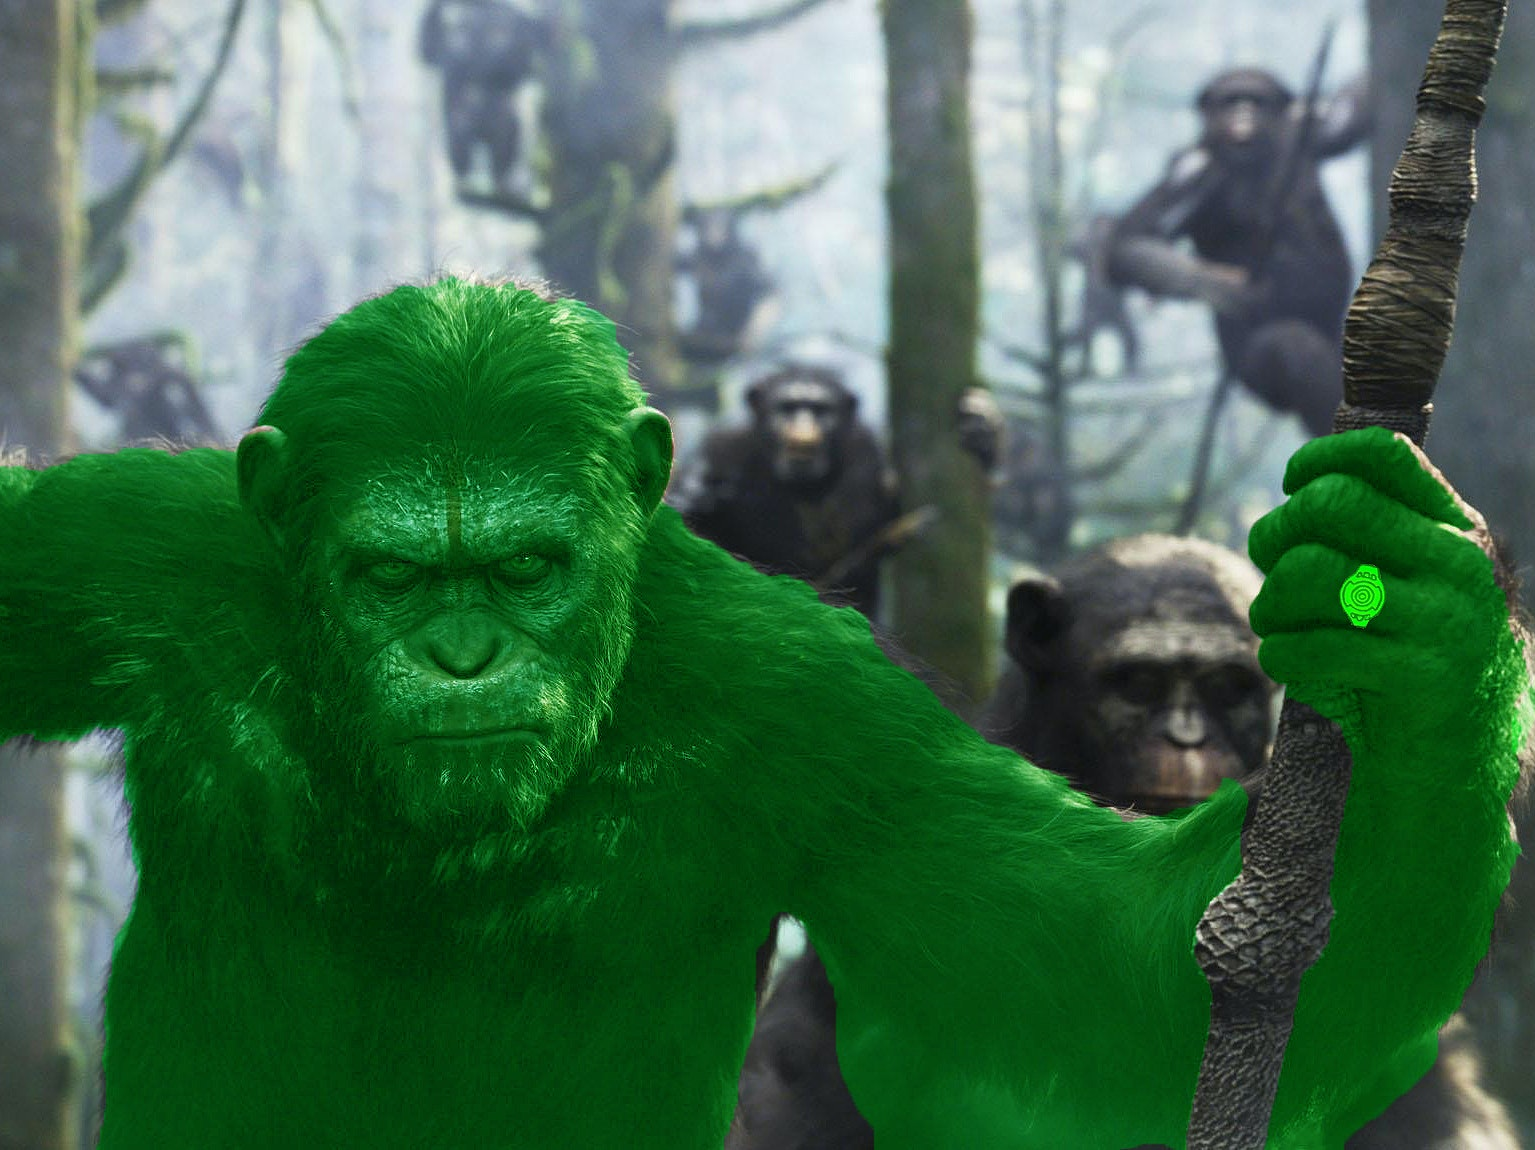 DC's Has an Ape Green Lantern in 'Planet of the Apes' Crossover